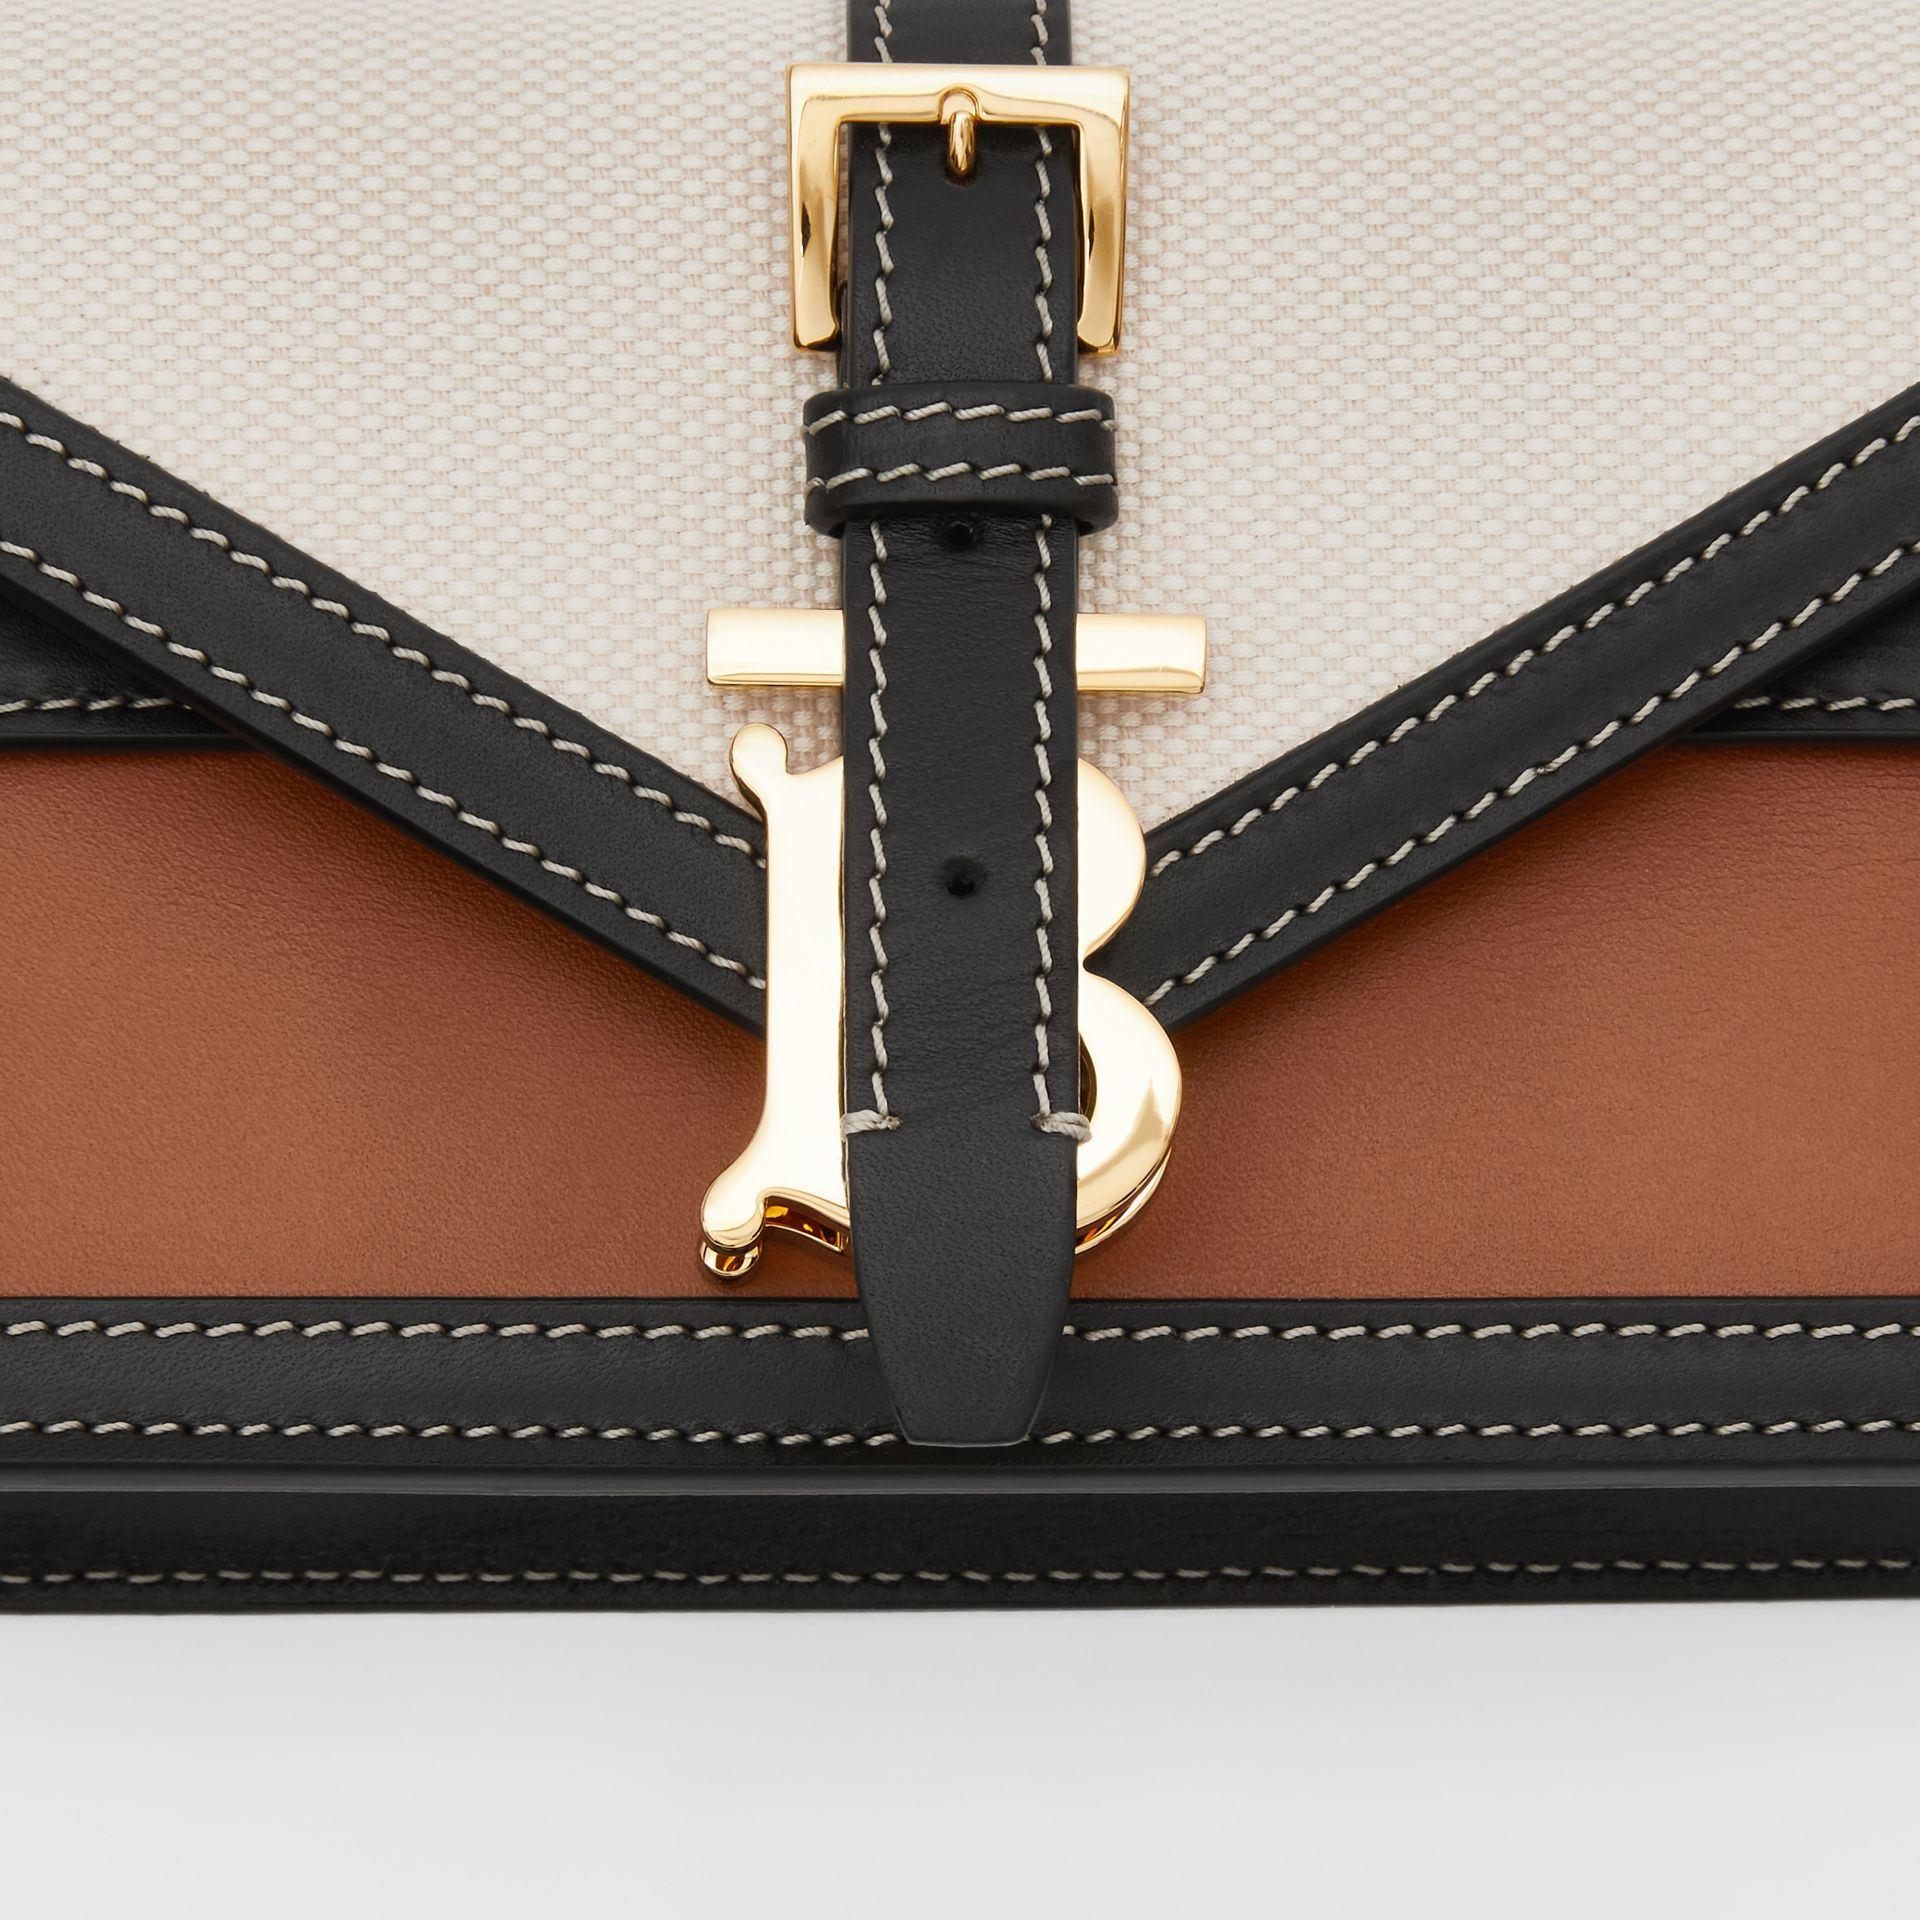 Mini Canvas and Leather TB Envelope Clutch in Tan - Women | Burberry Australia - gallery image 1